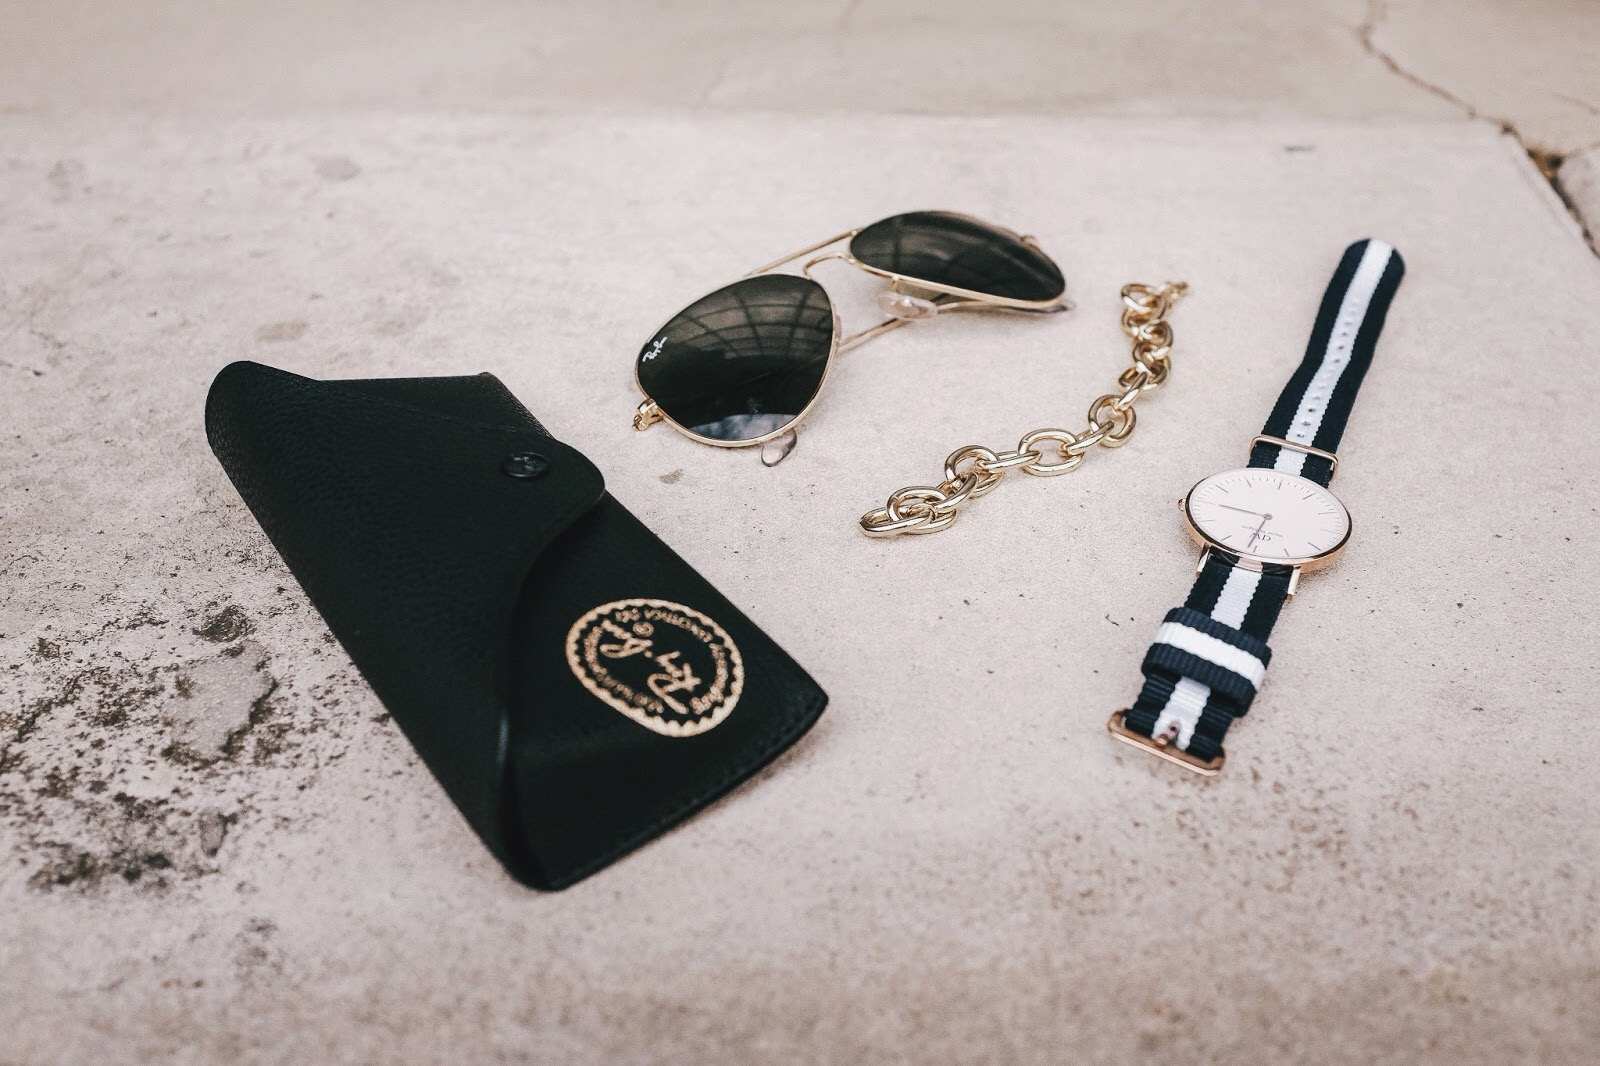 gold ray ban aviators gold link bracelet and strip rose gold daniel wellington watch